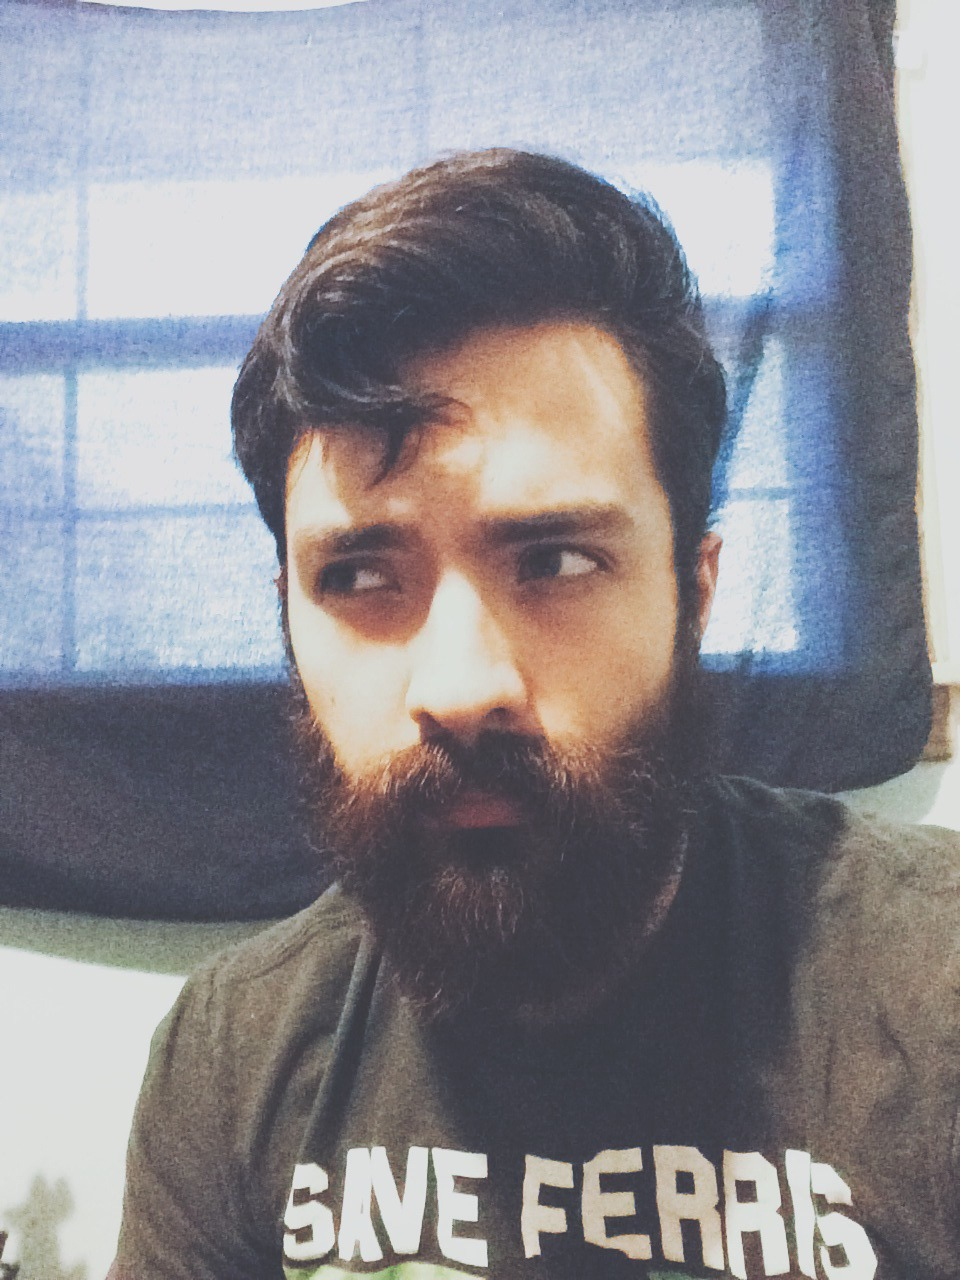 buthehasdimples plans delayed equals selfie for beardburnme http://www.neofic.com